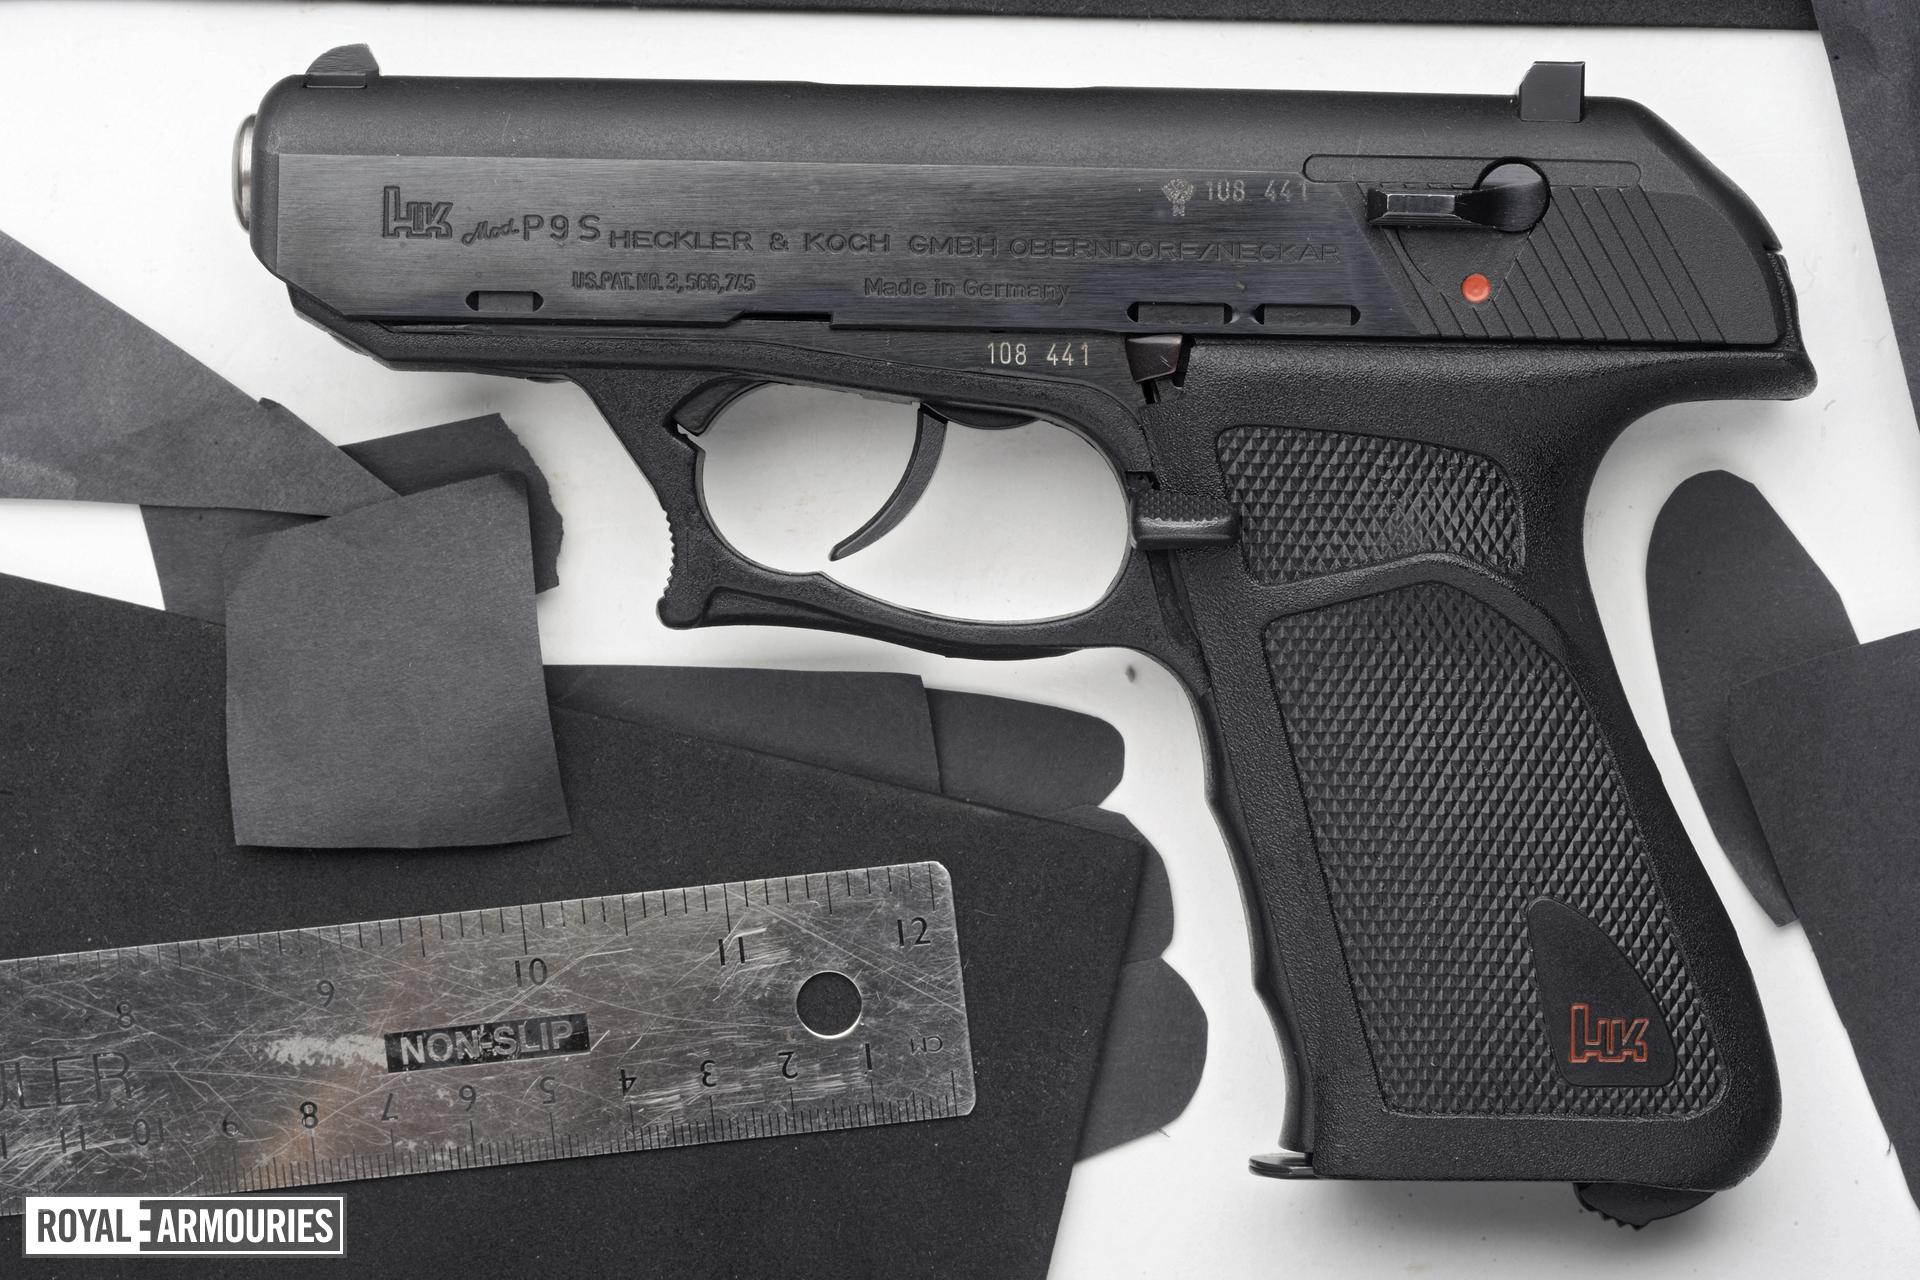 Centrefire self-loading pistol - Heckler and Koch P9S